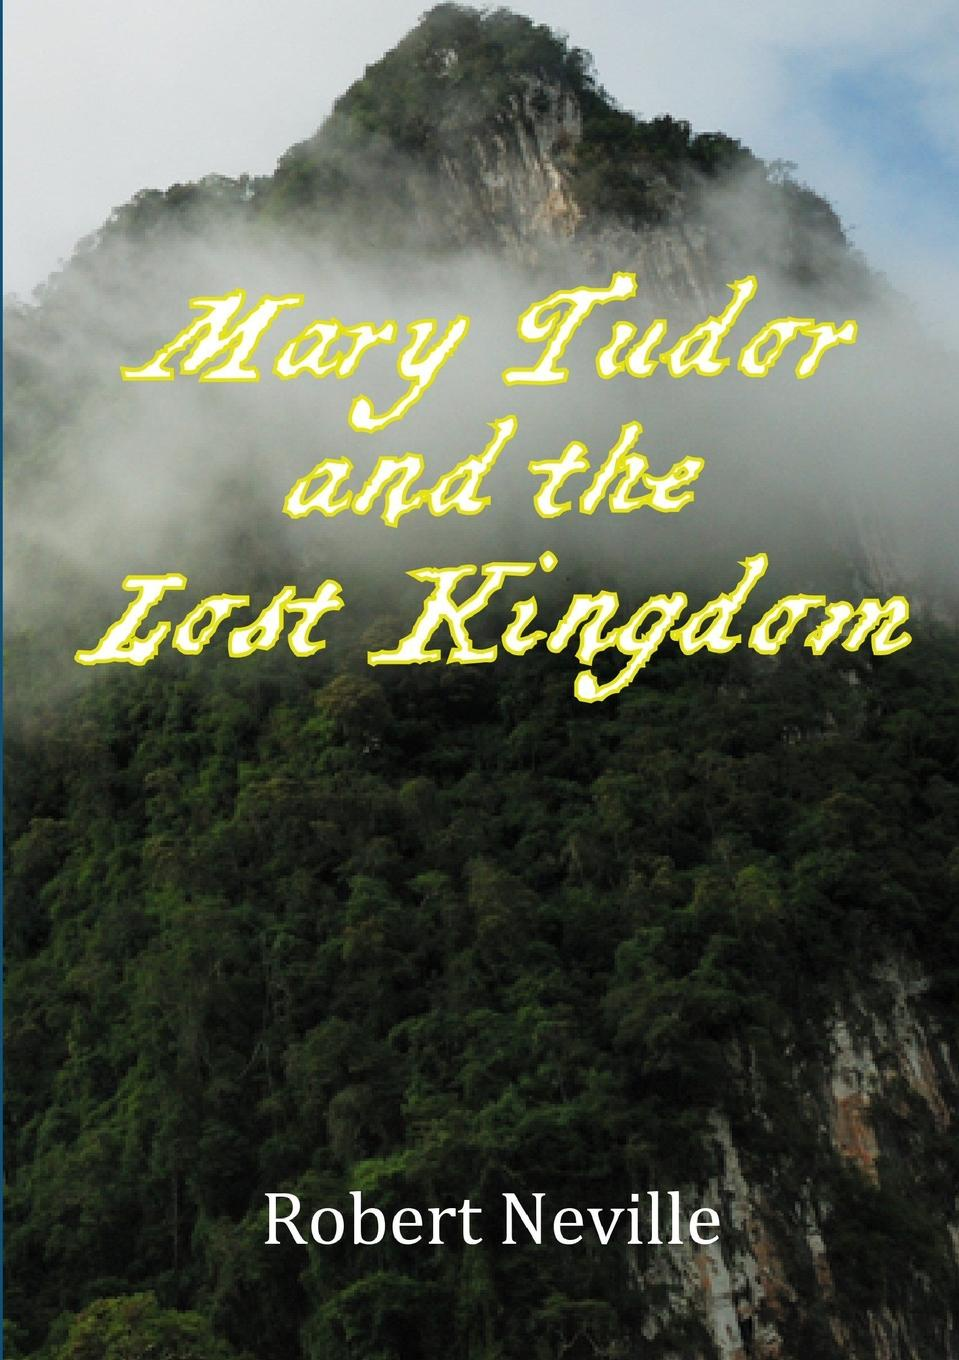 Robert Neville Mary Tudor and the Lost Kingdom sheridan hay the secret of lost things